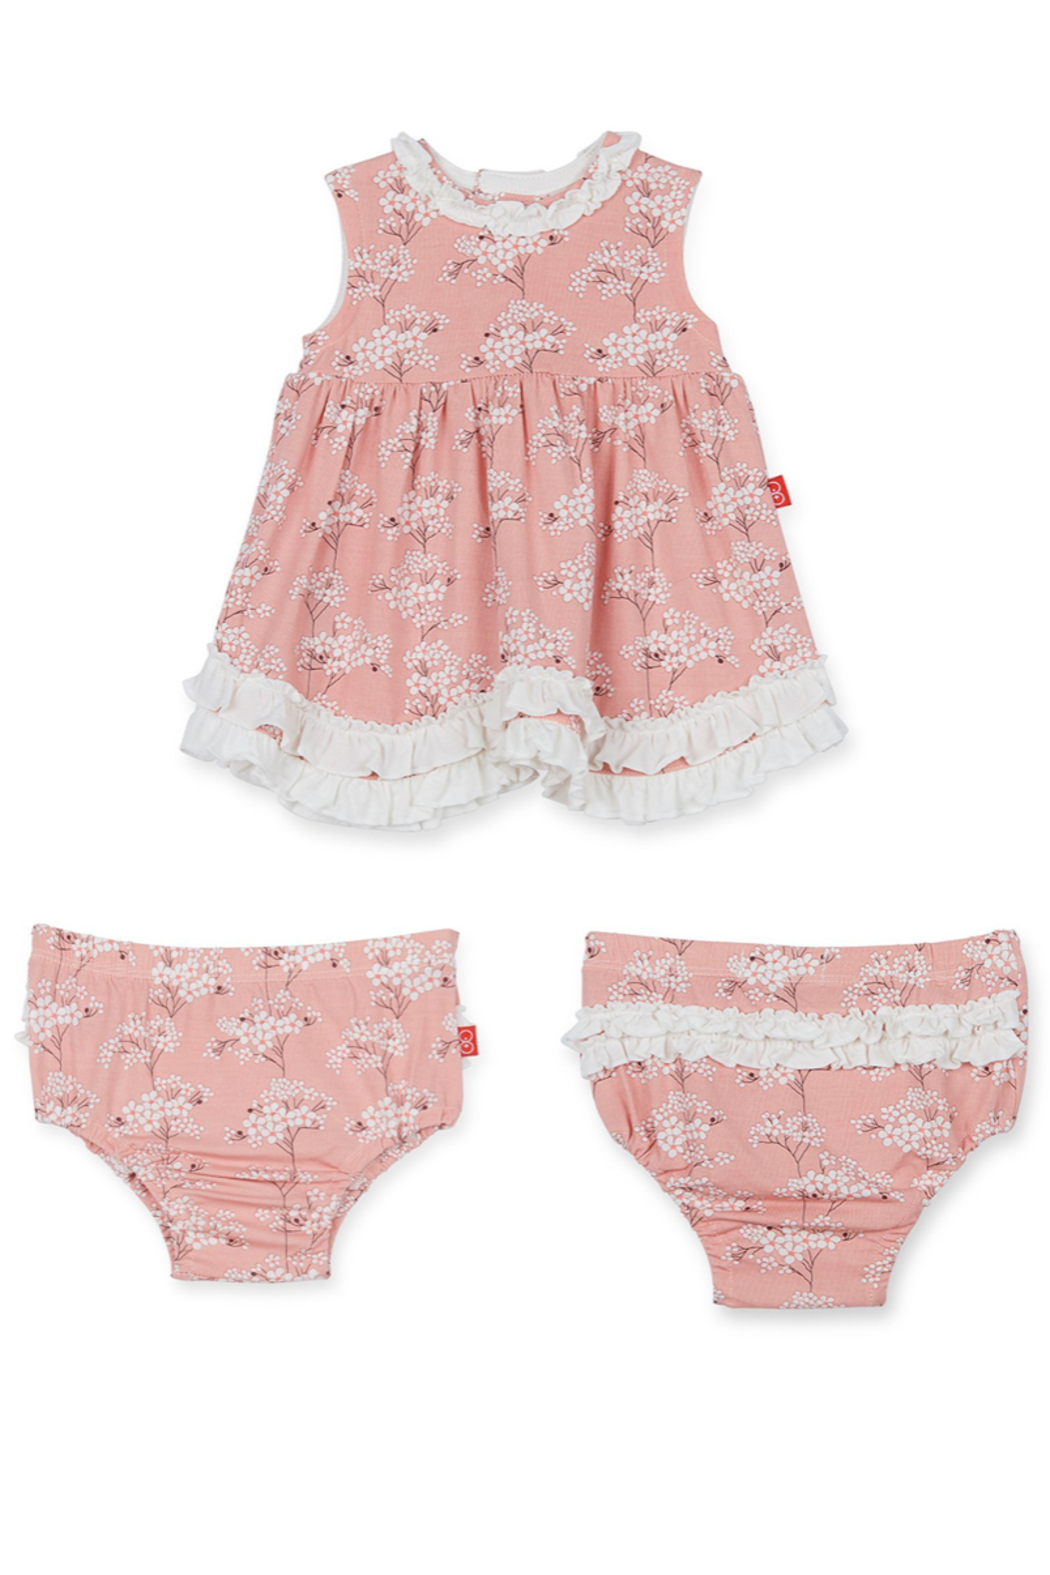 Magnetic Me Cherry Blossom Modal Dress/Diaper Cover - Front Cropped Image